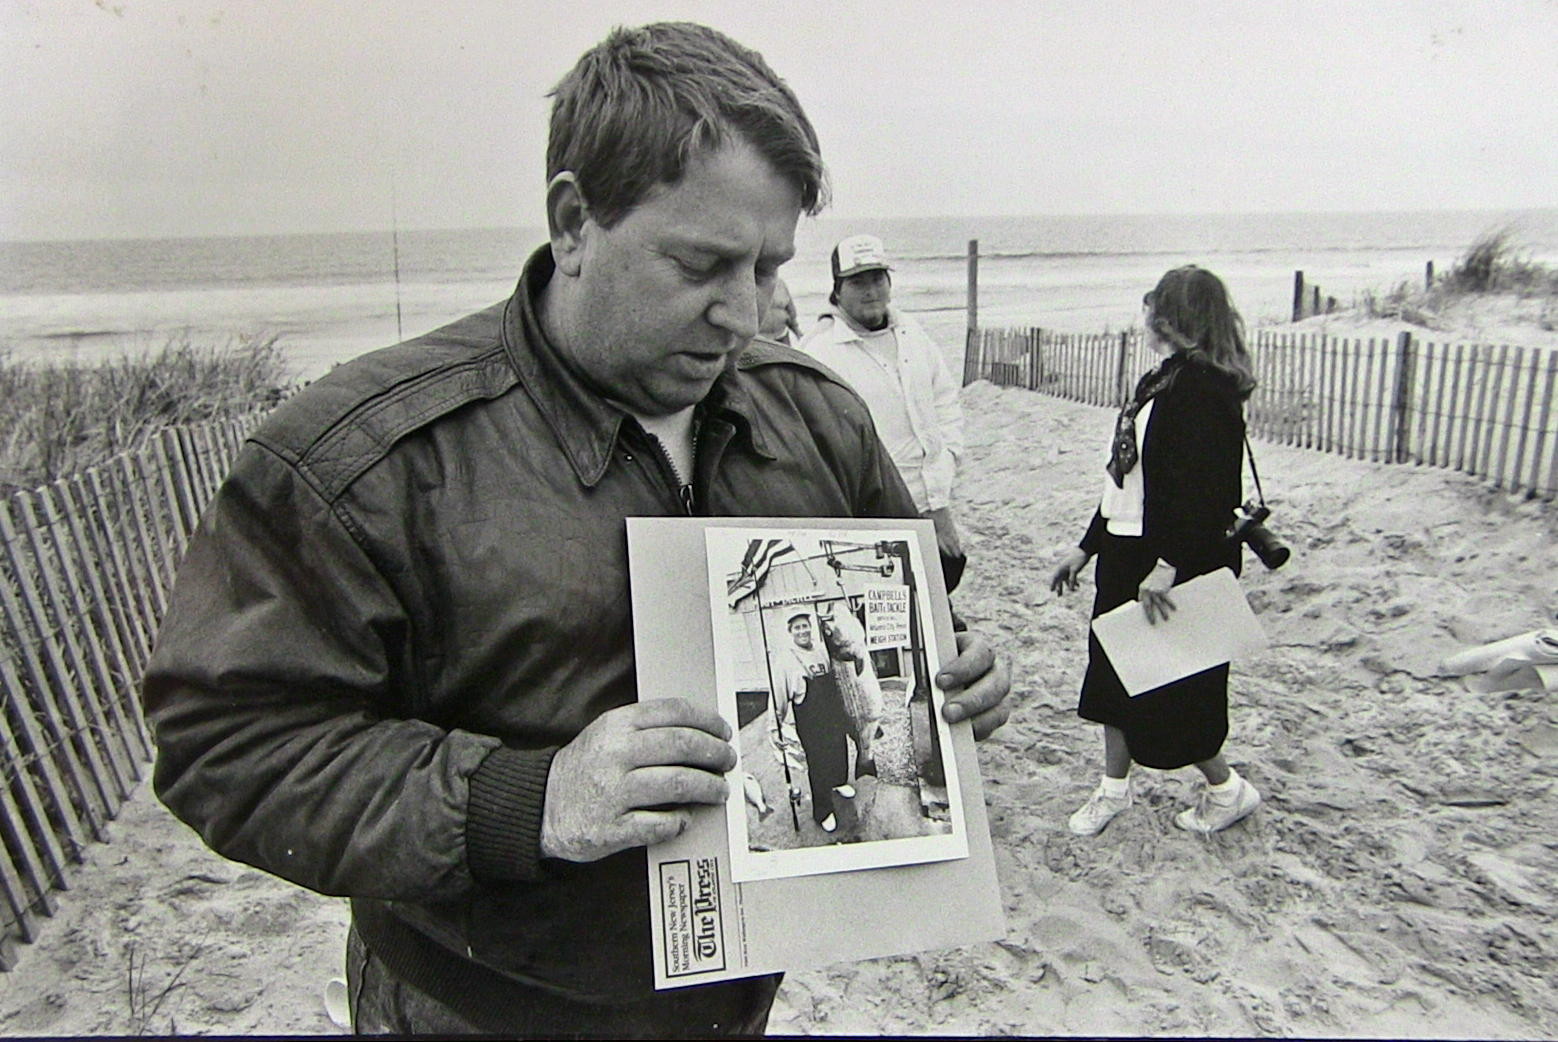 Al McRenolds - the one time striped bass record holder at 78lb 8oz (Caught in Atlantic city off the surf/jetty ON a Plug), Al Mcreynolds visited the LBI surf for a press event. Here in the phot Al is holding the photo of his weighin at Campbell's Bait & Tackle… Sept 21, 1982